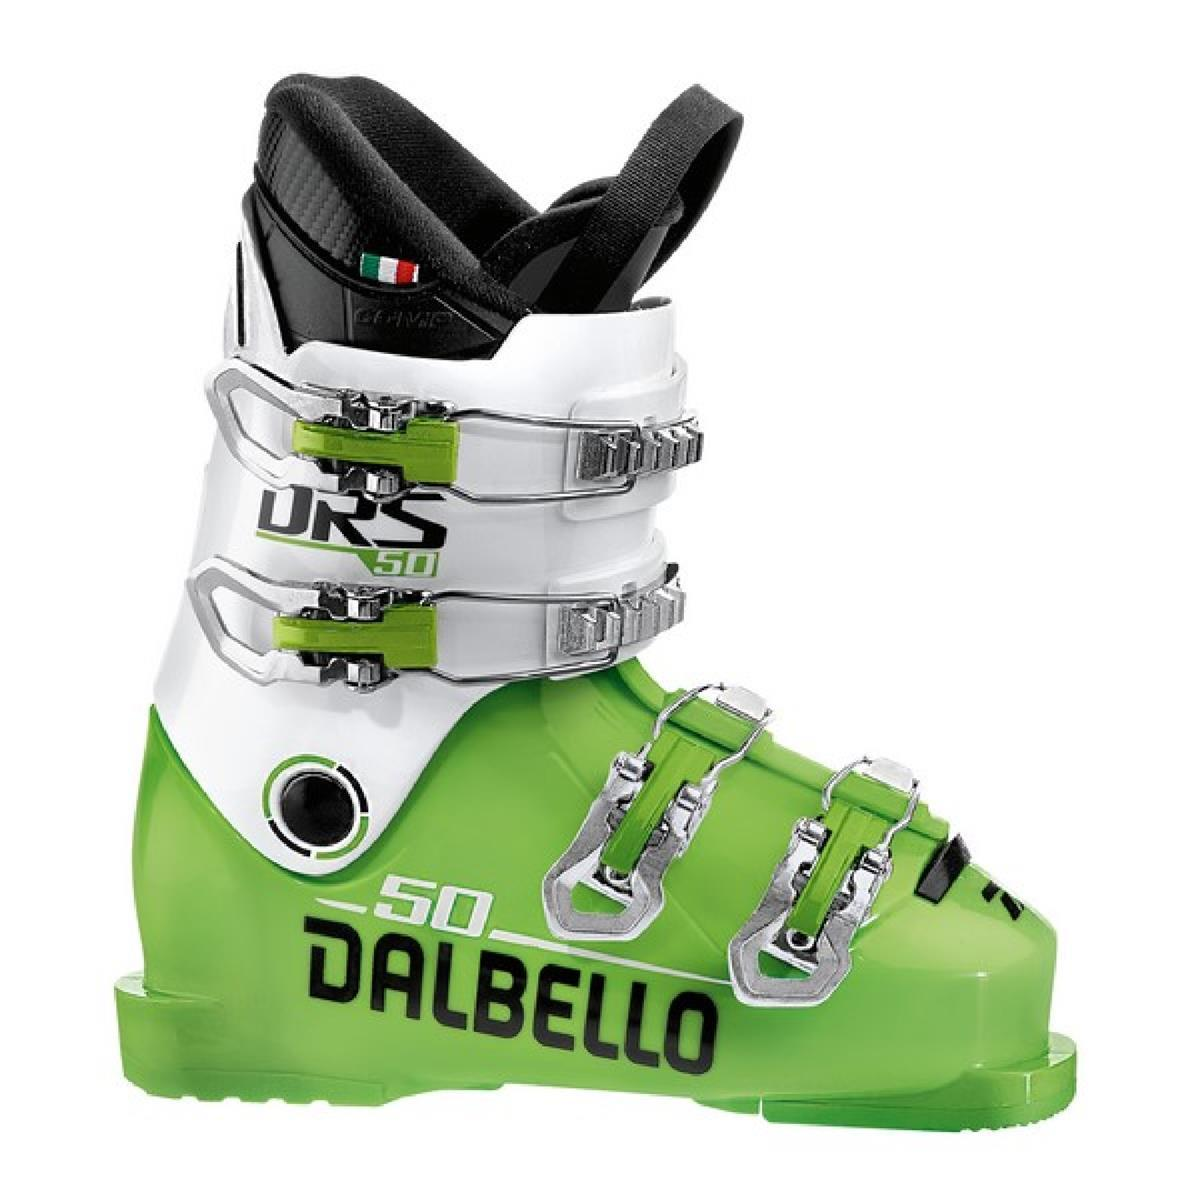 Dalbello DRS 50 Jr.